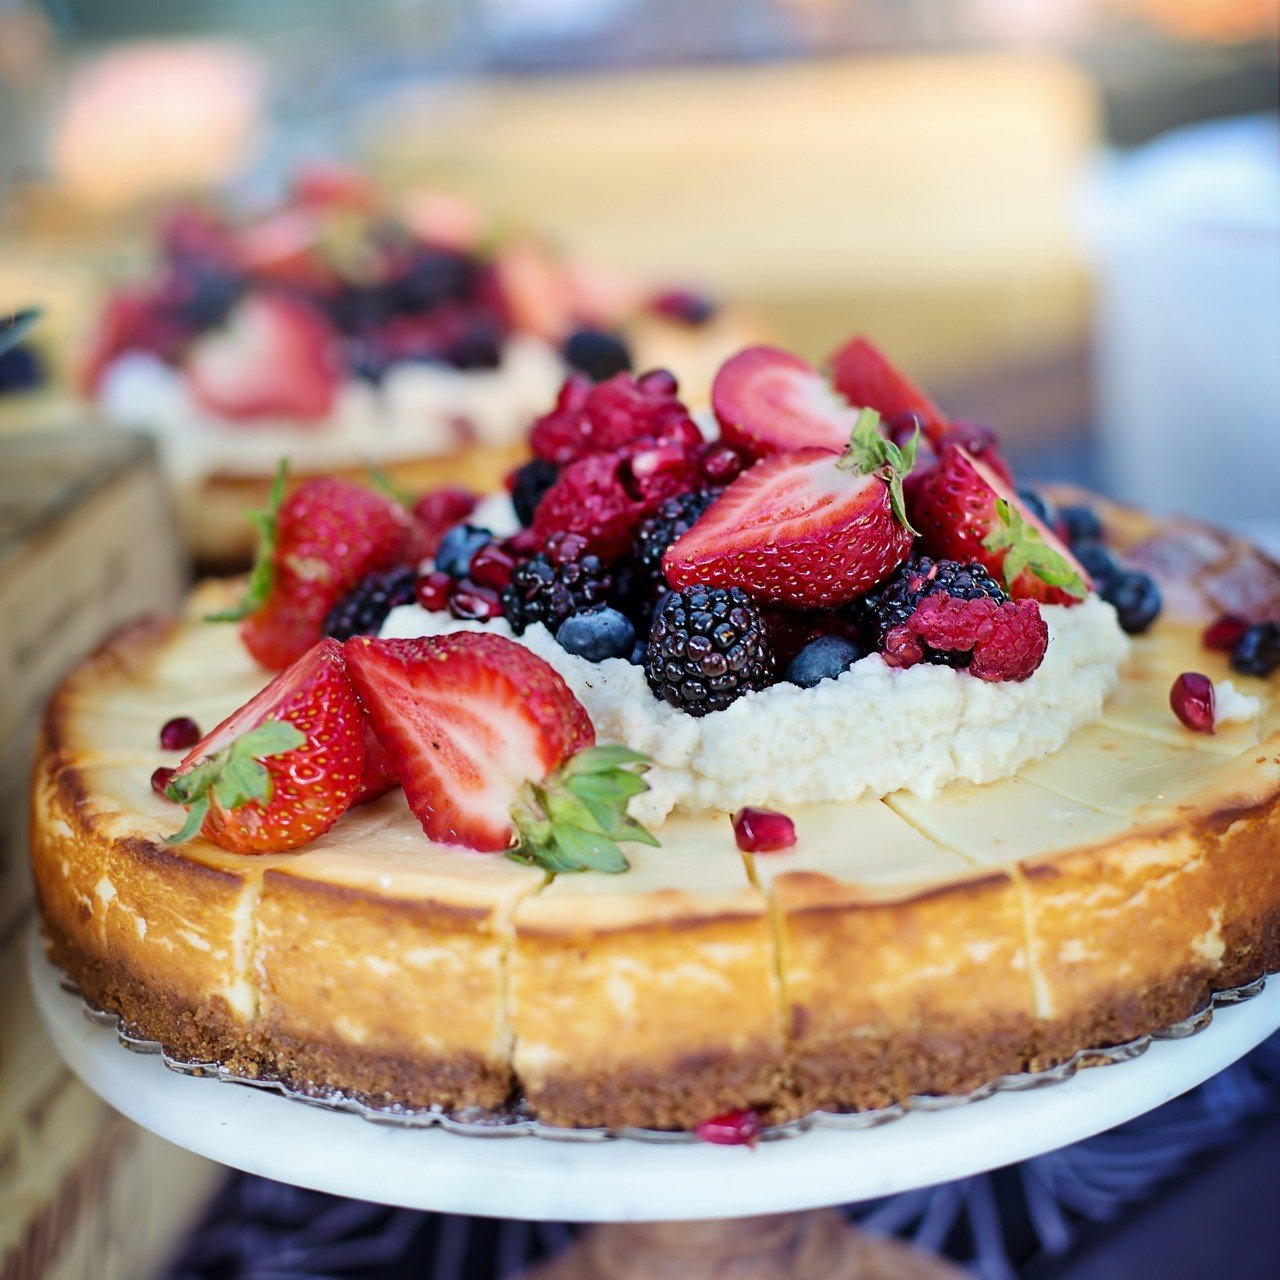 Baked Cheesecake with Summer Fruits Recipe